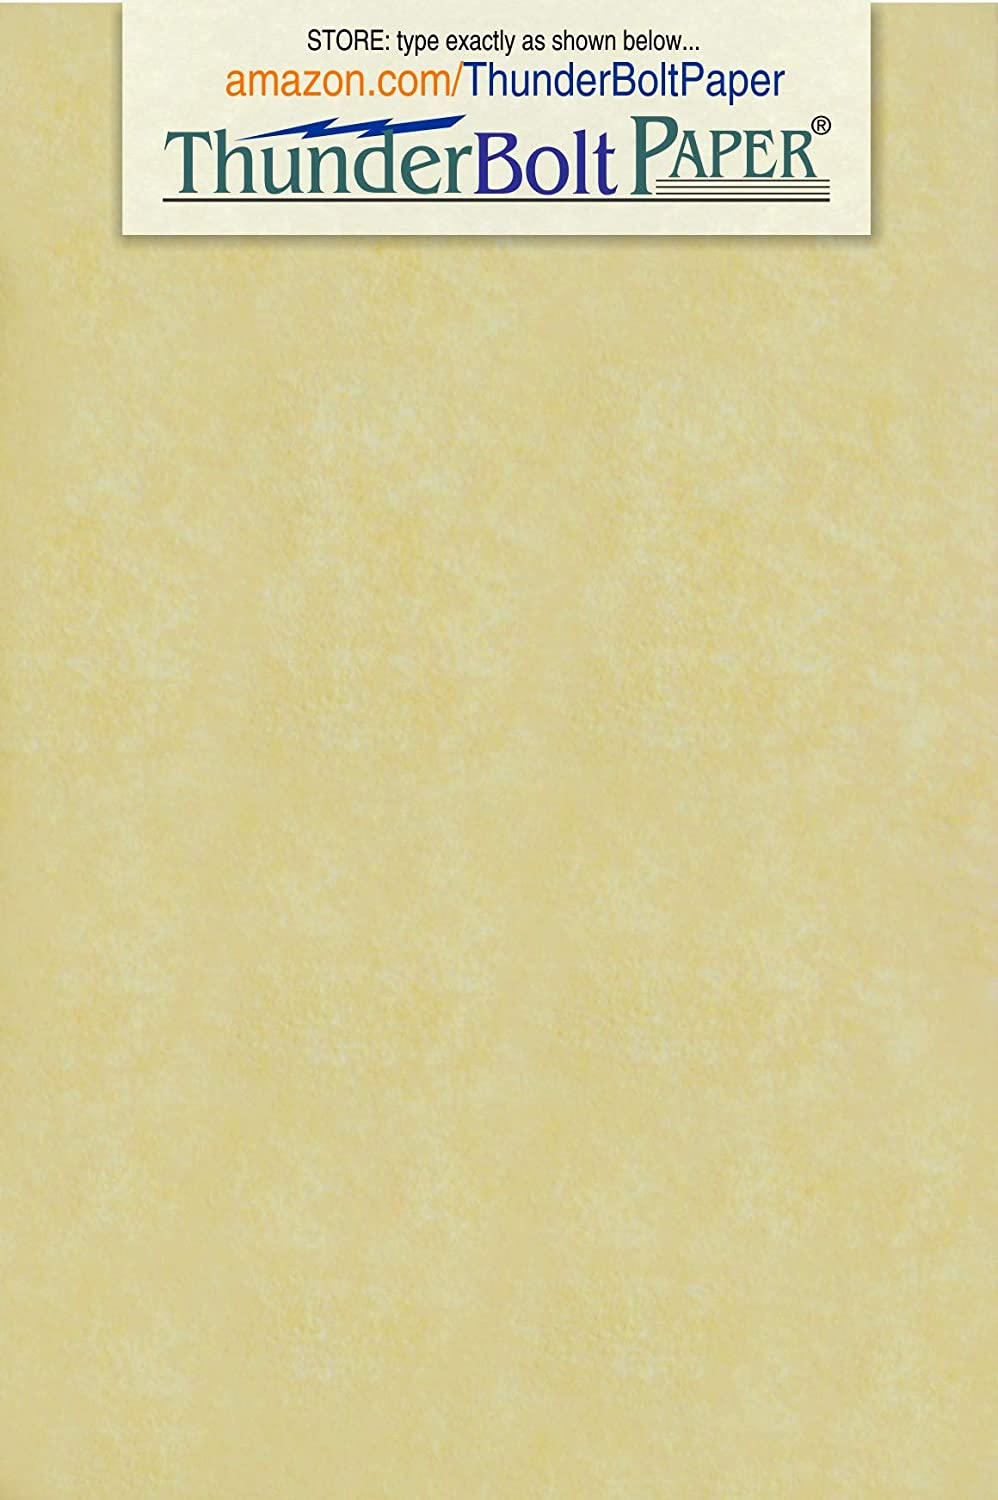 Photo|Picture-Frame Size 50 Old White Parchment 65lb Cover Weight Paper 8 X 10 8X10 Inches Printable Old Parchment Semblance